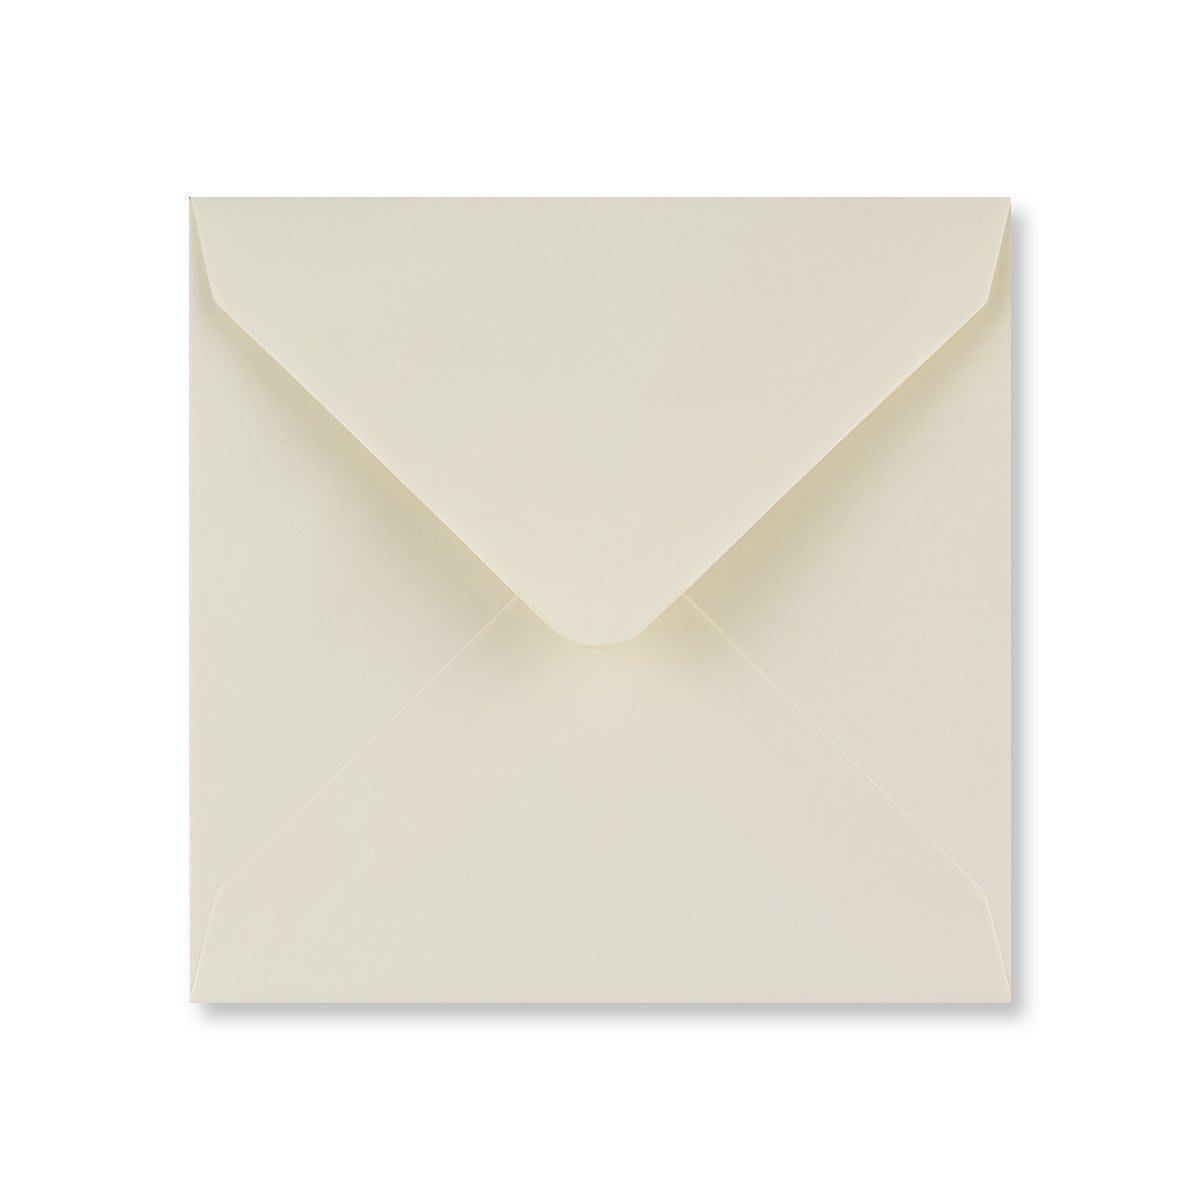 IVORY 130mm SQUARE ENVELOPE